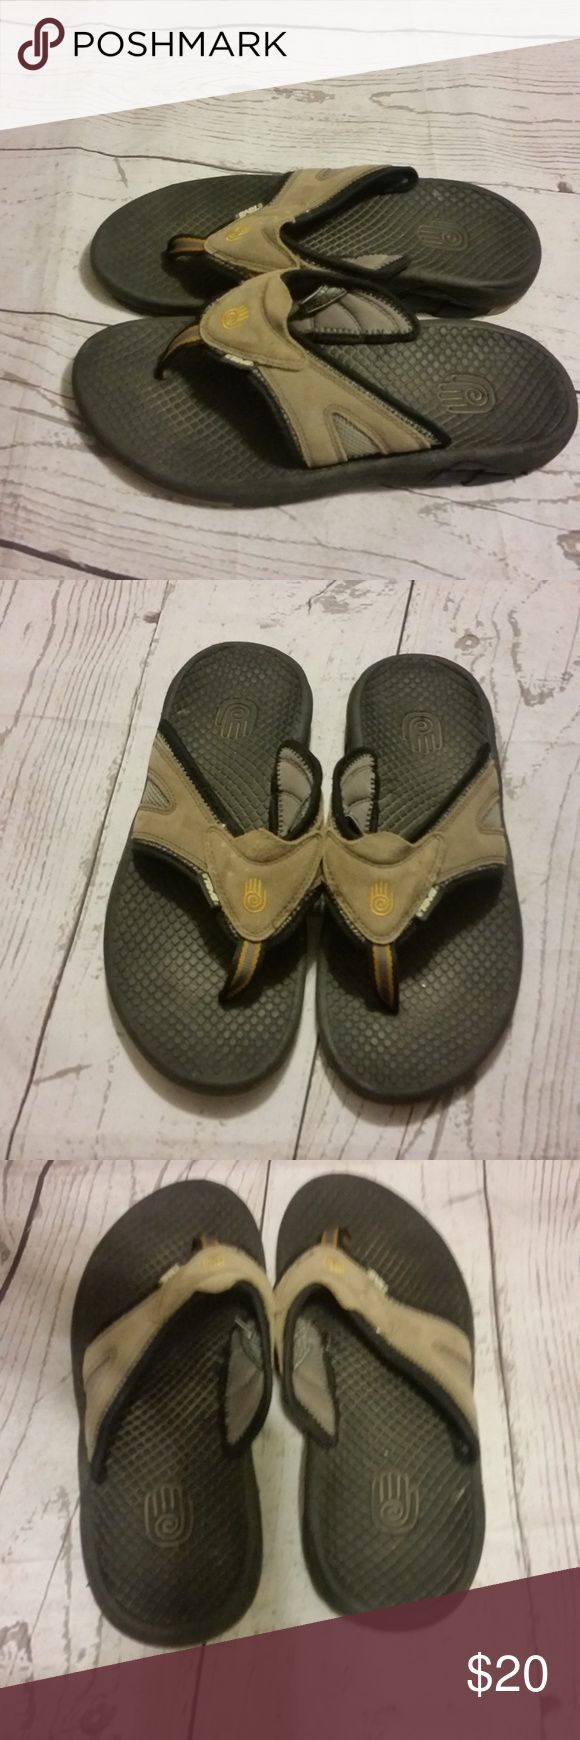 Teva Mens Flip Flops Size 9 Gently Used Teva Mens Flip Flops US Size 9 EU Size 42  Trusted Seller. Fast shipping.  Please check out my other listings. Items being added daily. Thanks for stopping in!  Posh By Design Teva Shoes Sandals & Flip-Flops